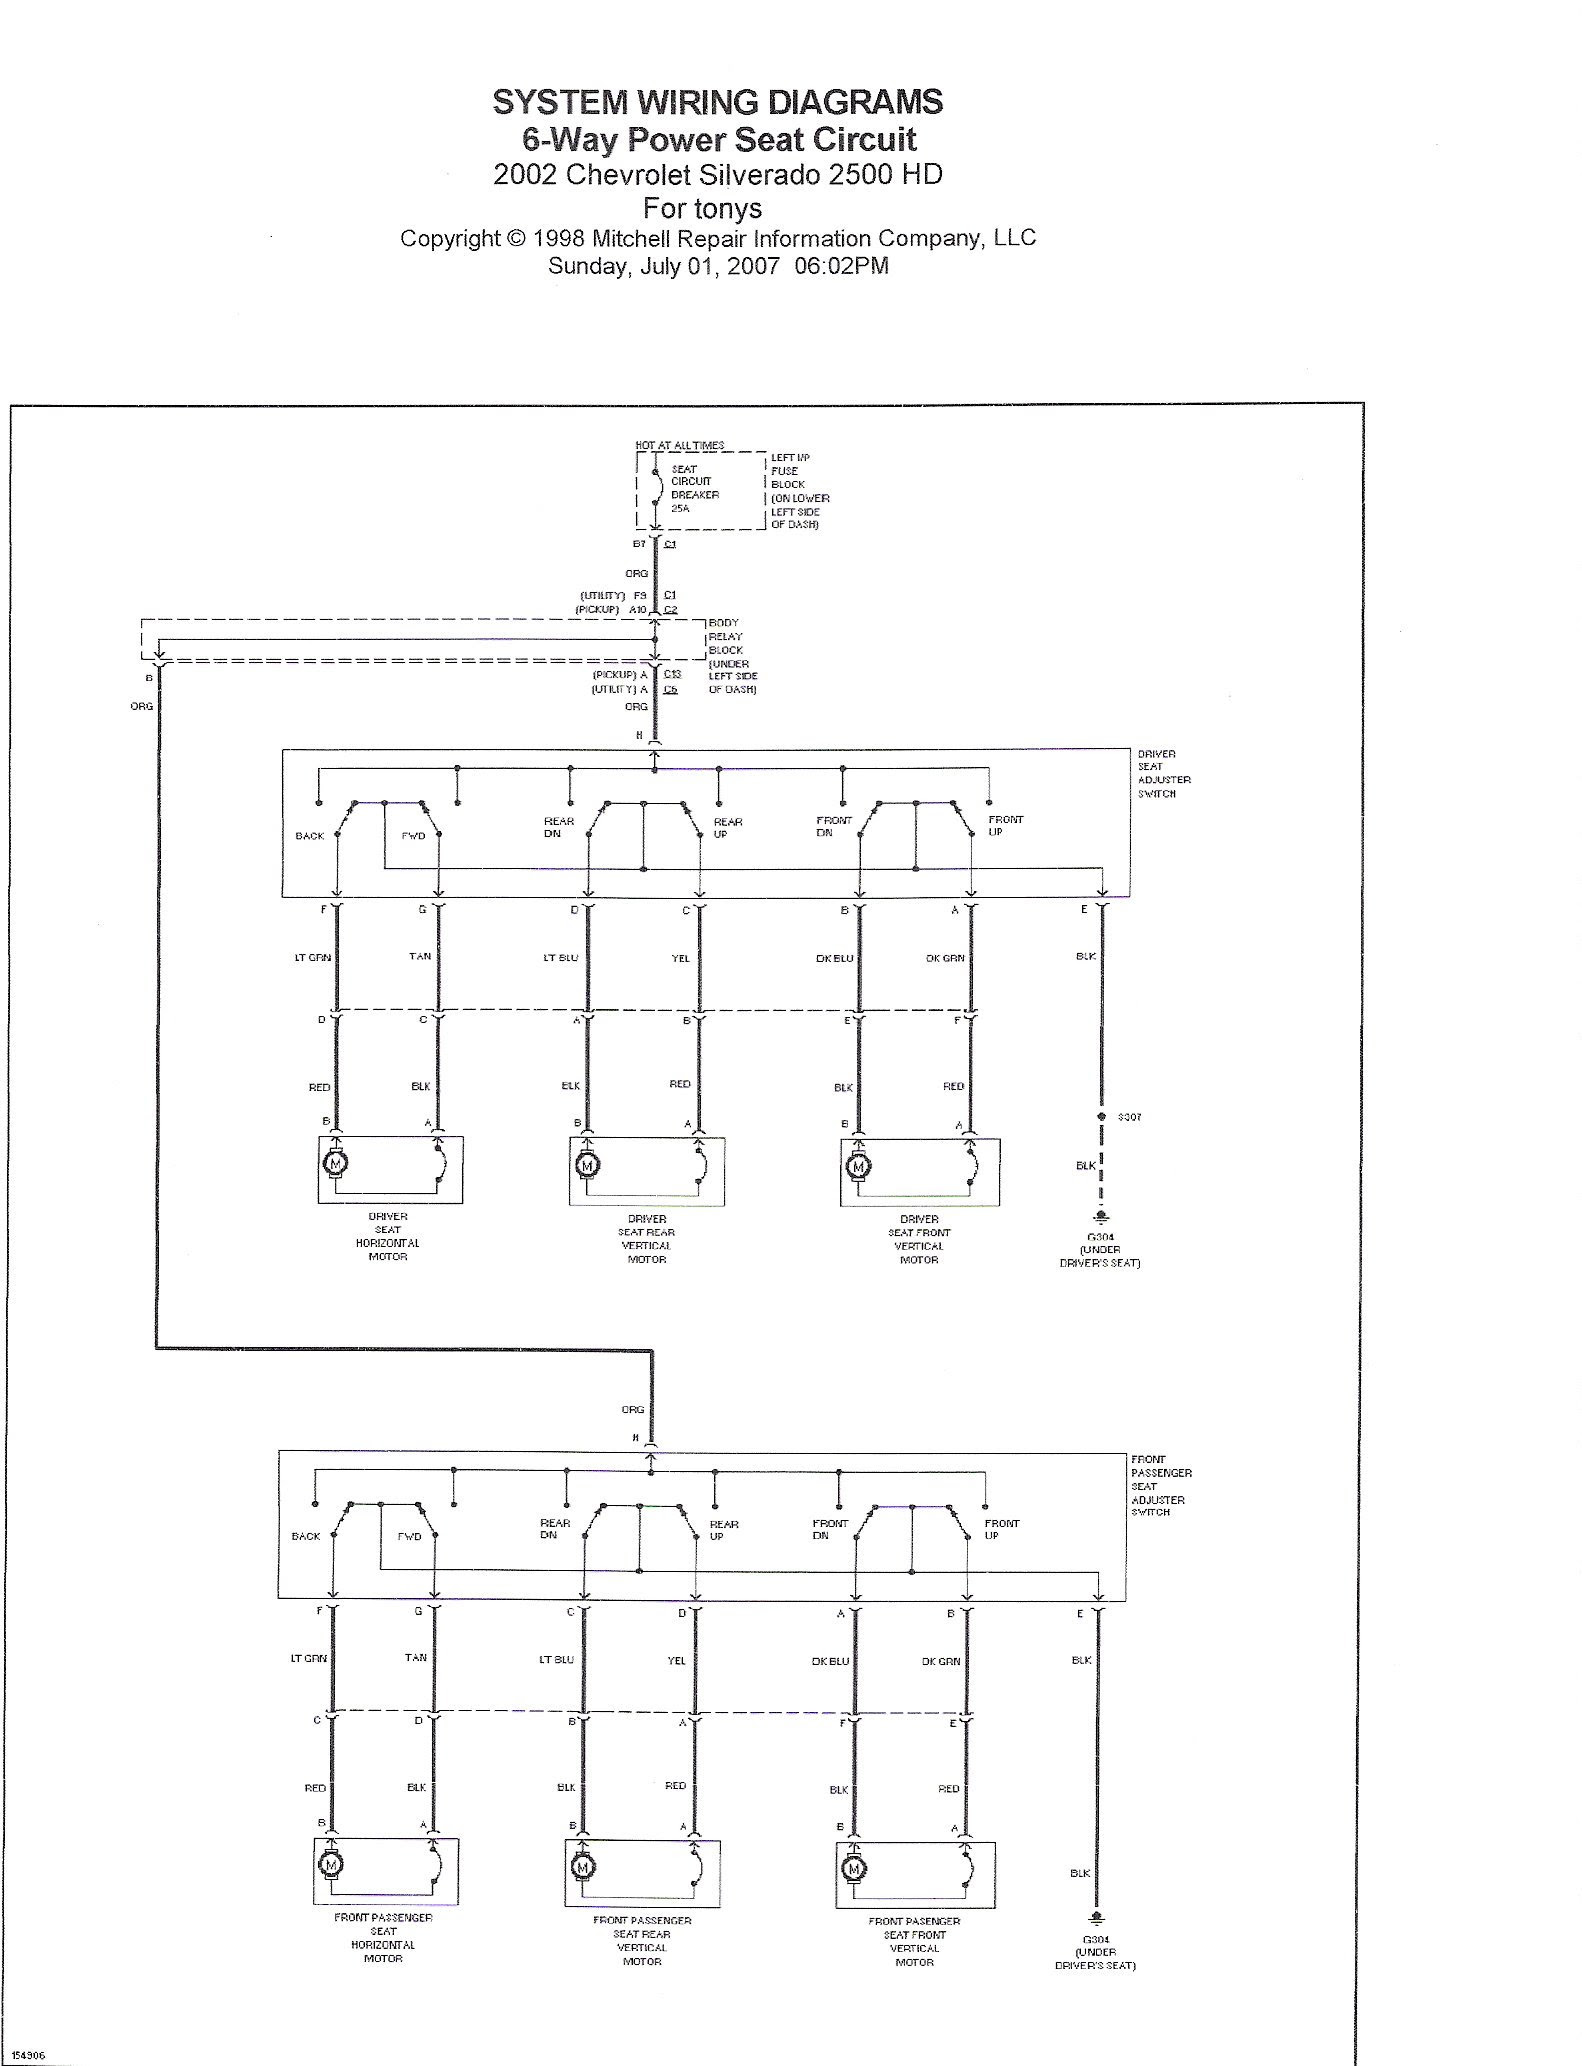 360a5c7 2003 Chevy Avalanche Trailer Wiring Diagram Wiring Library